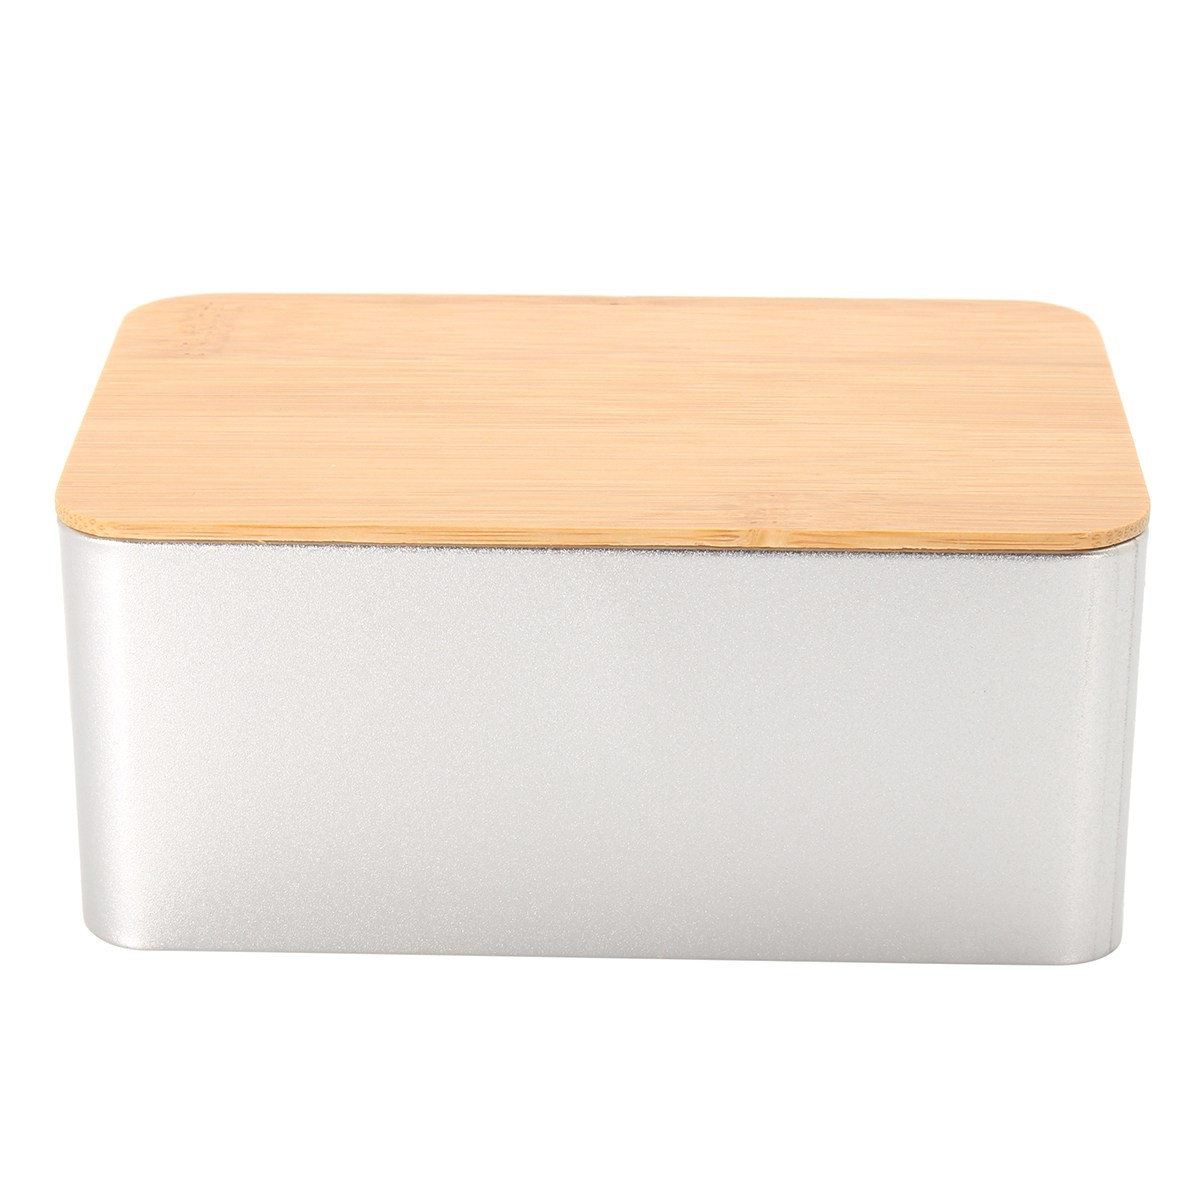 Kitchen Metal Storage Box With Bamboo Lid Bins Bread Sugar Boxes Tea Herb Stoarge Holder Food Containers Organizer Supplies 3